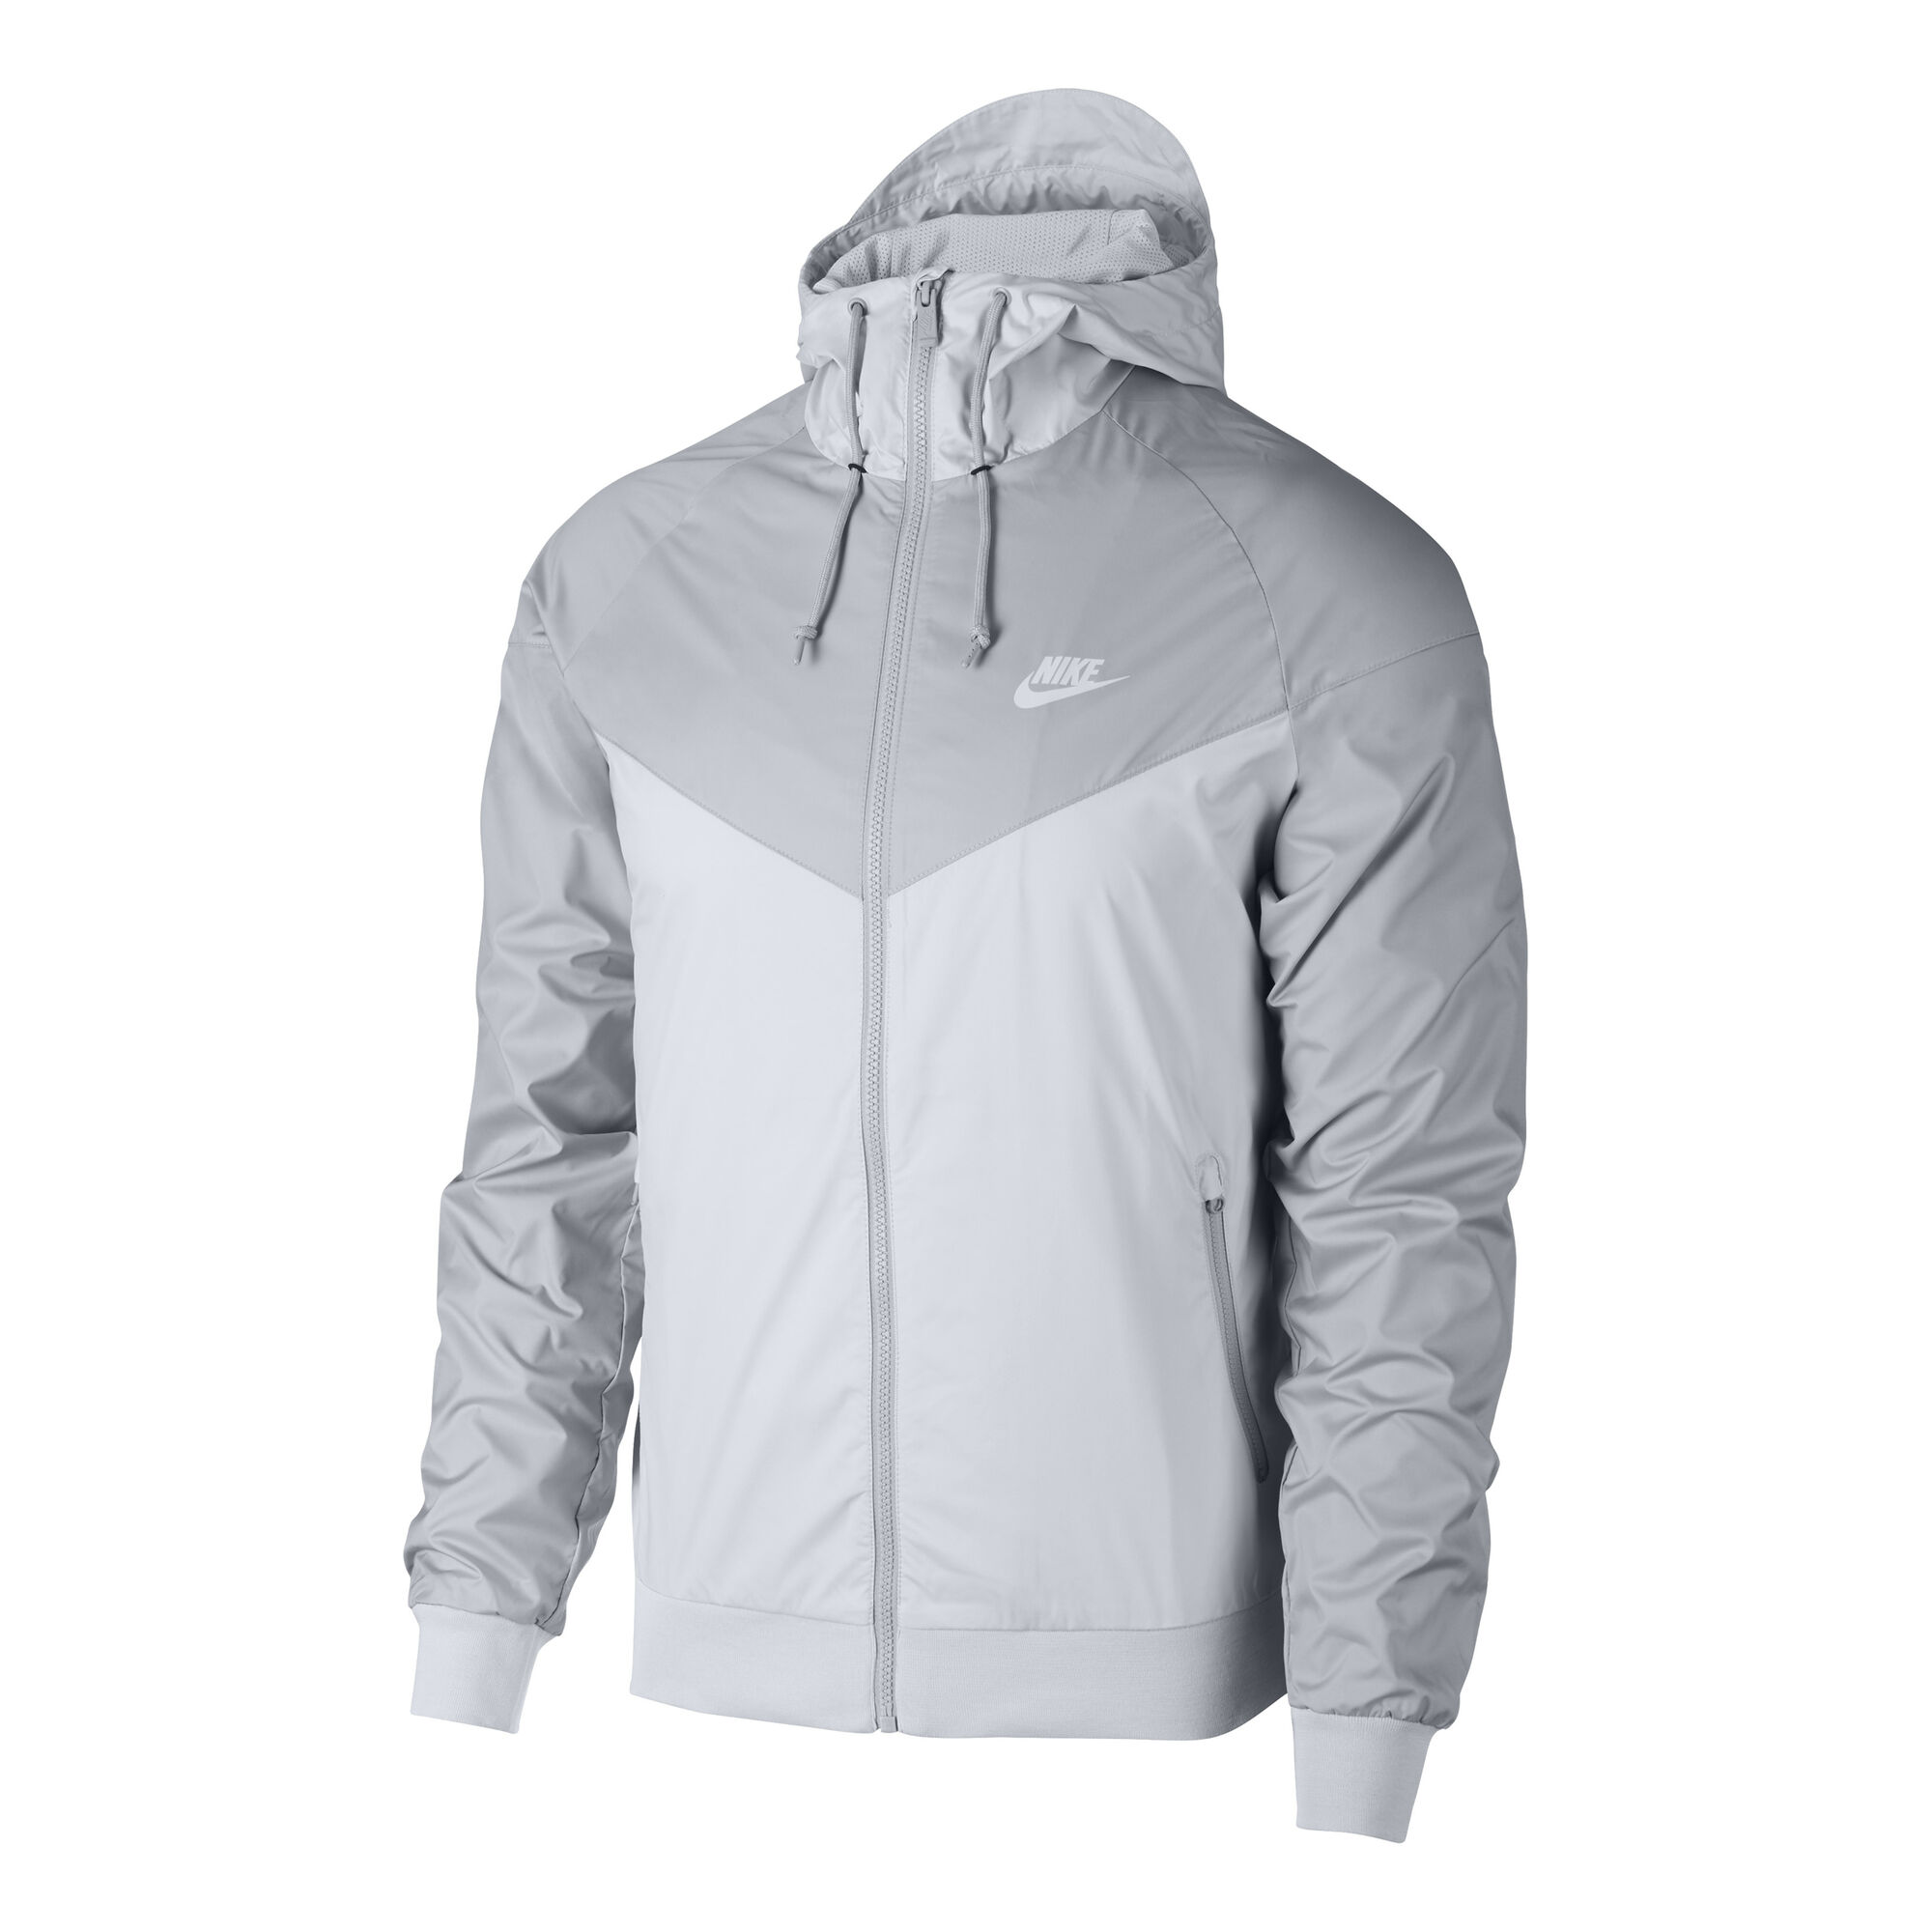 75b16982afdd buy Nike Windrunner Training Jacket Men - Lightgrey